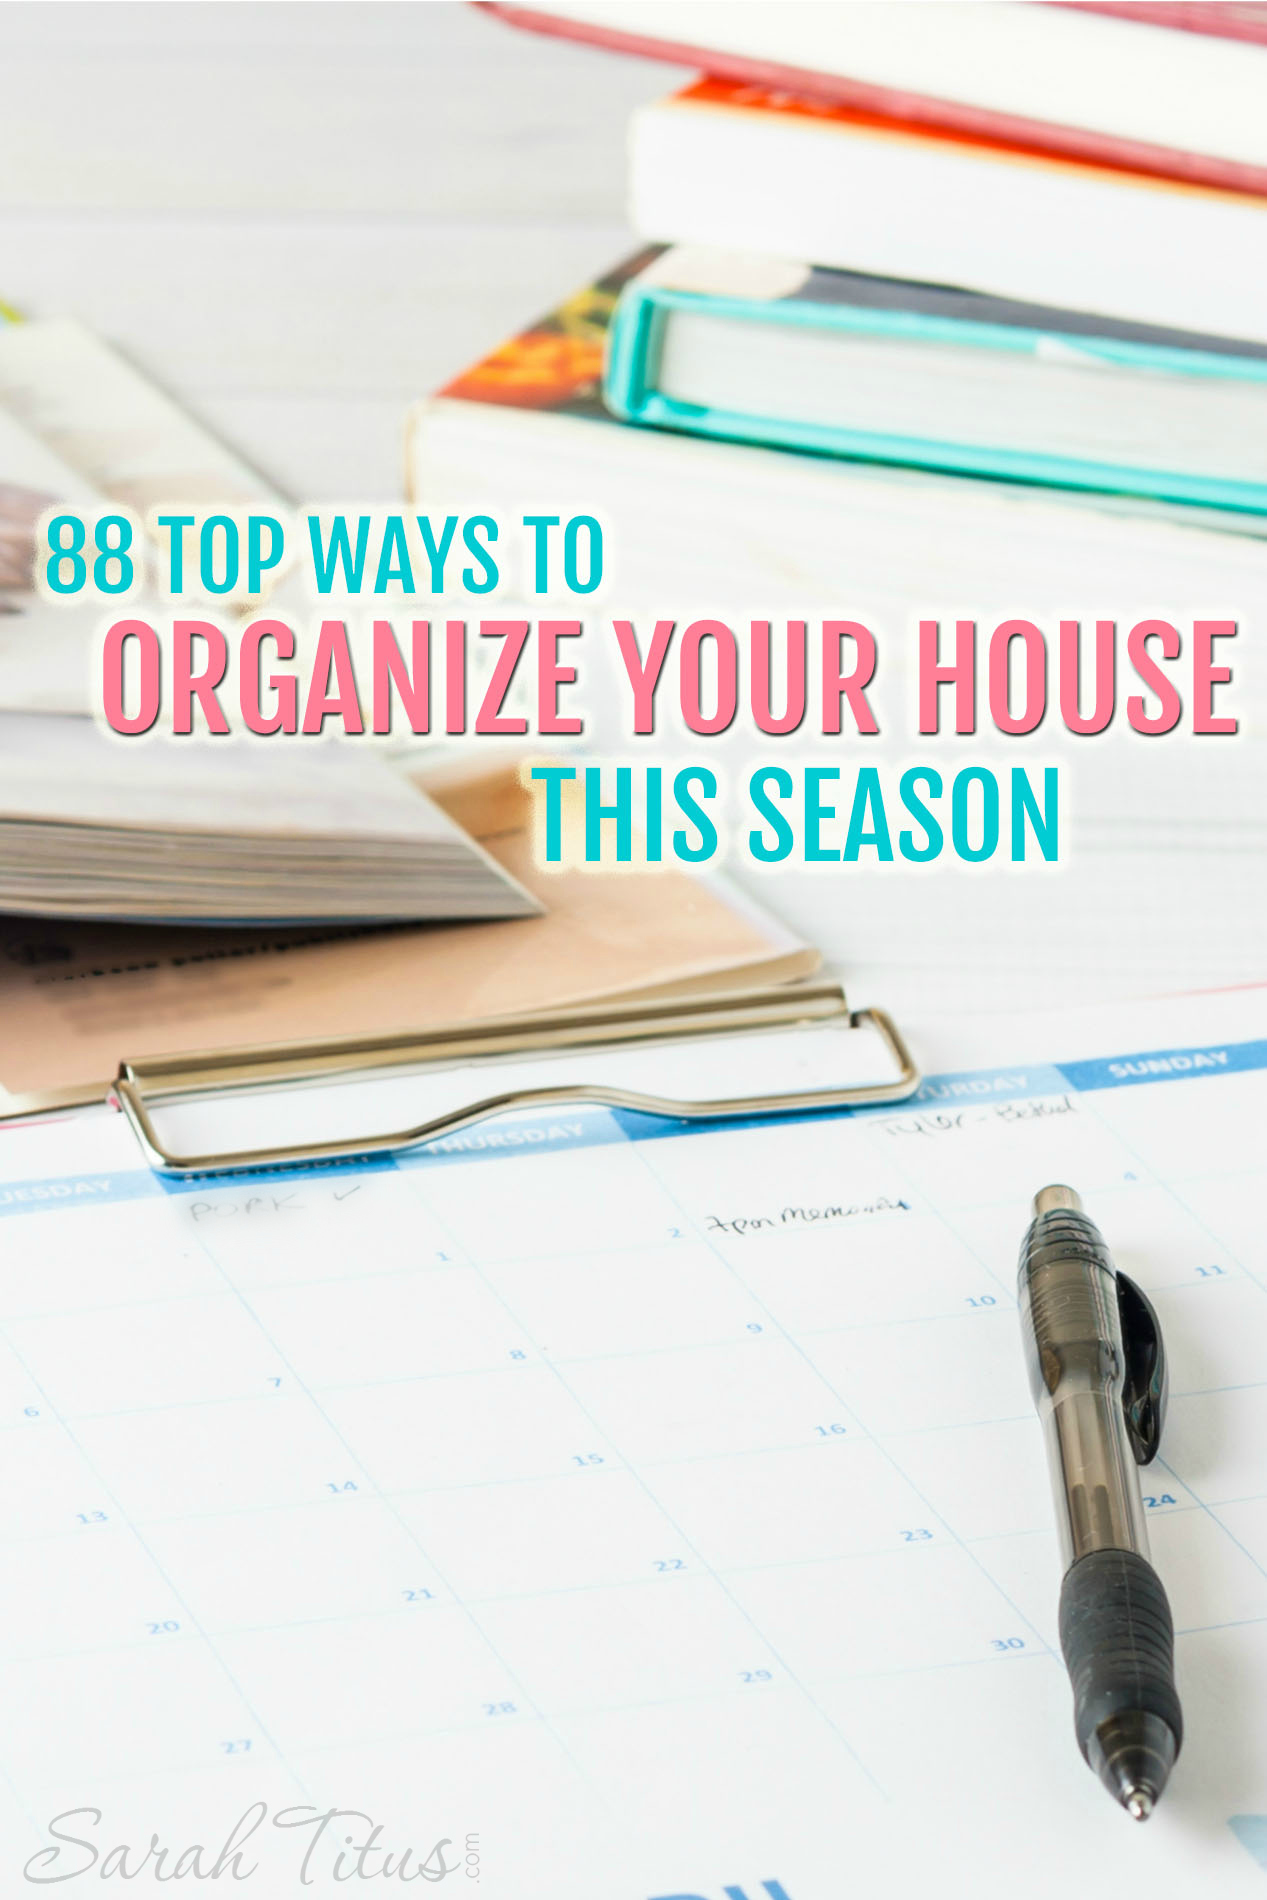 88 Best Latina Plus Models Images On Pinterest: 88 Top Ways To Organize Your House This Season